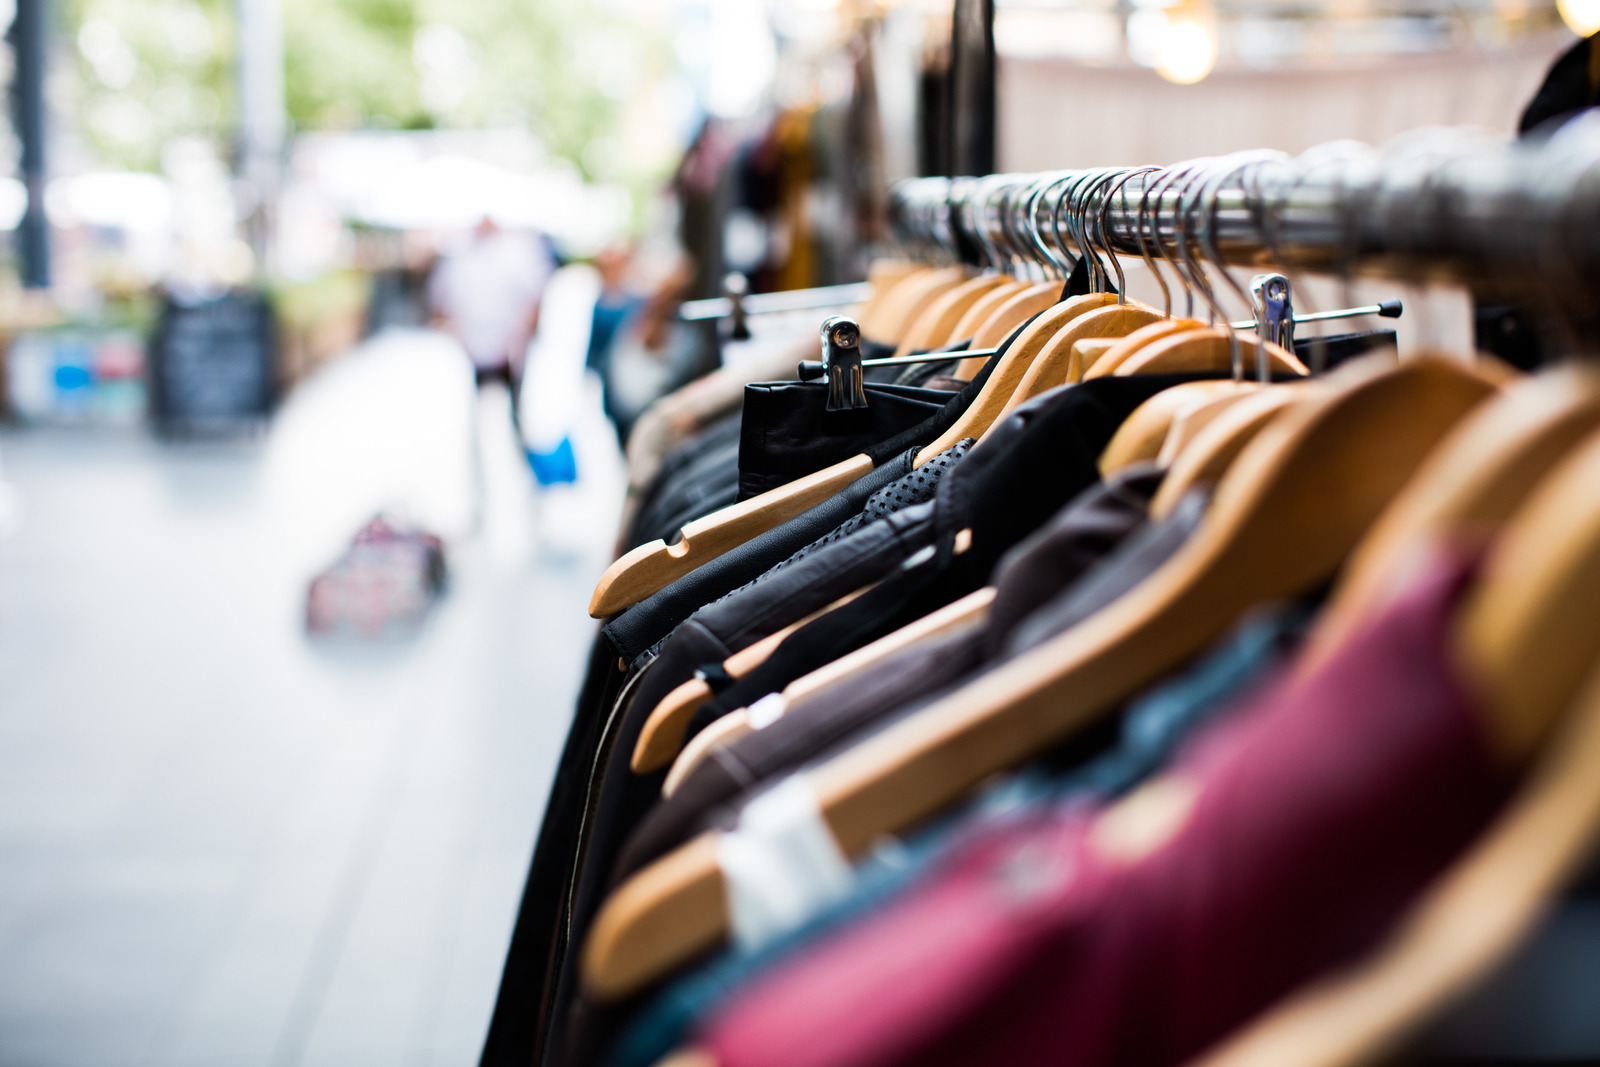 Canva - Clothes in Hanger Rack in Open Market